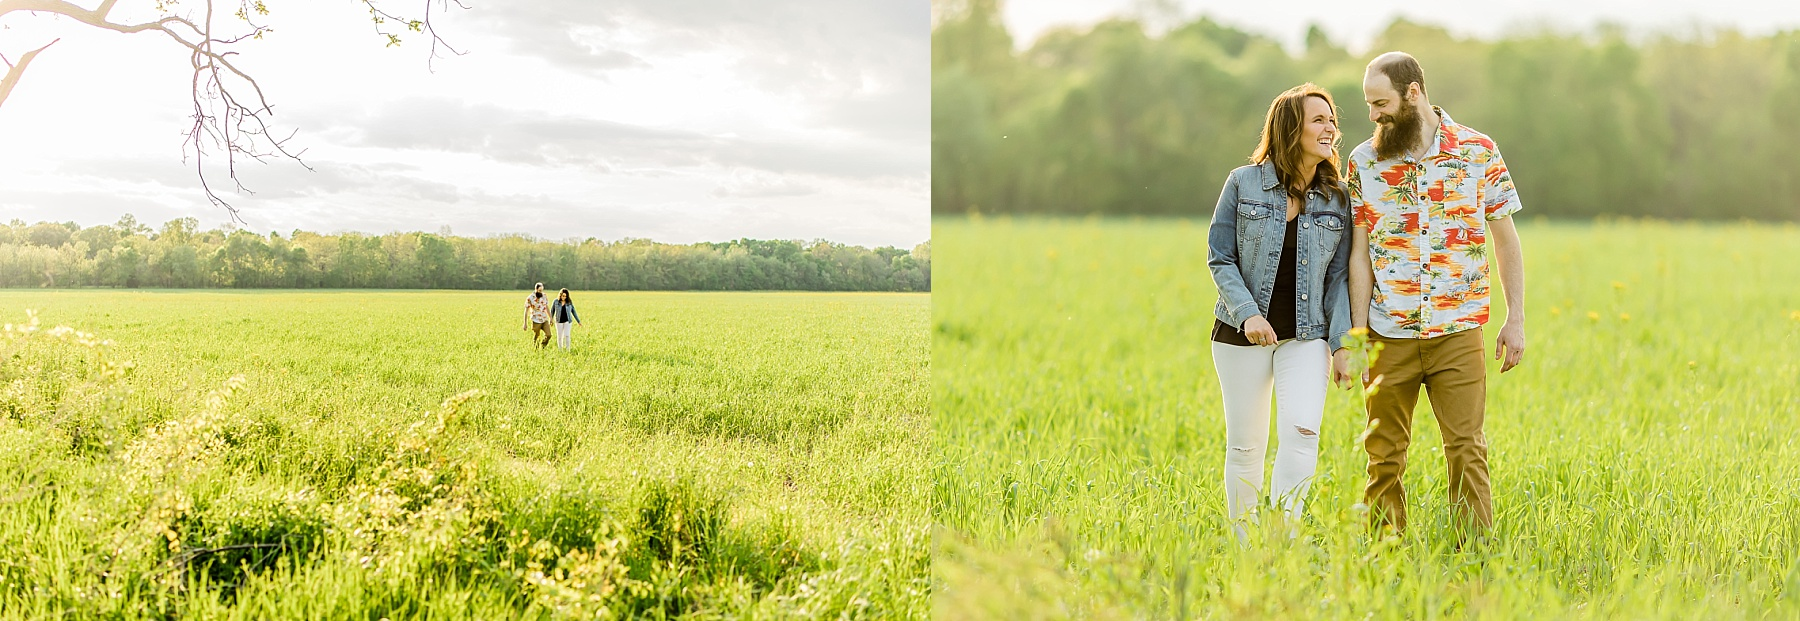 monticello indiana wedding engagement photography simple adventure weird_0047.jpg